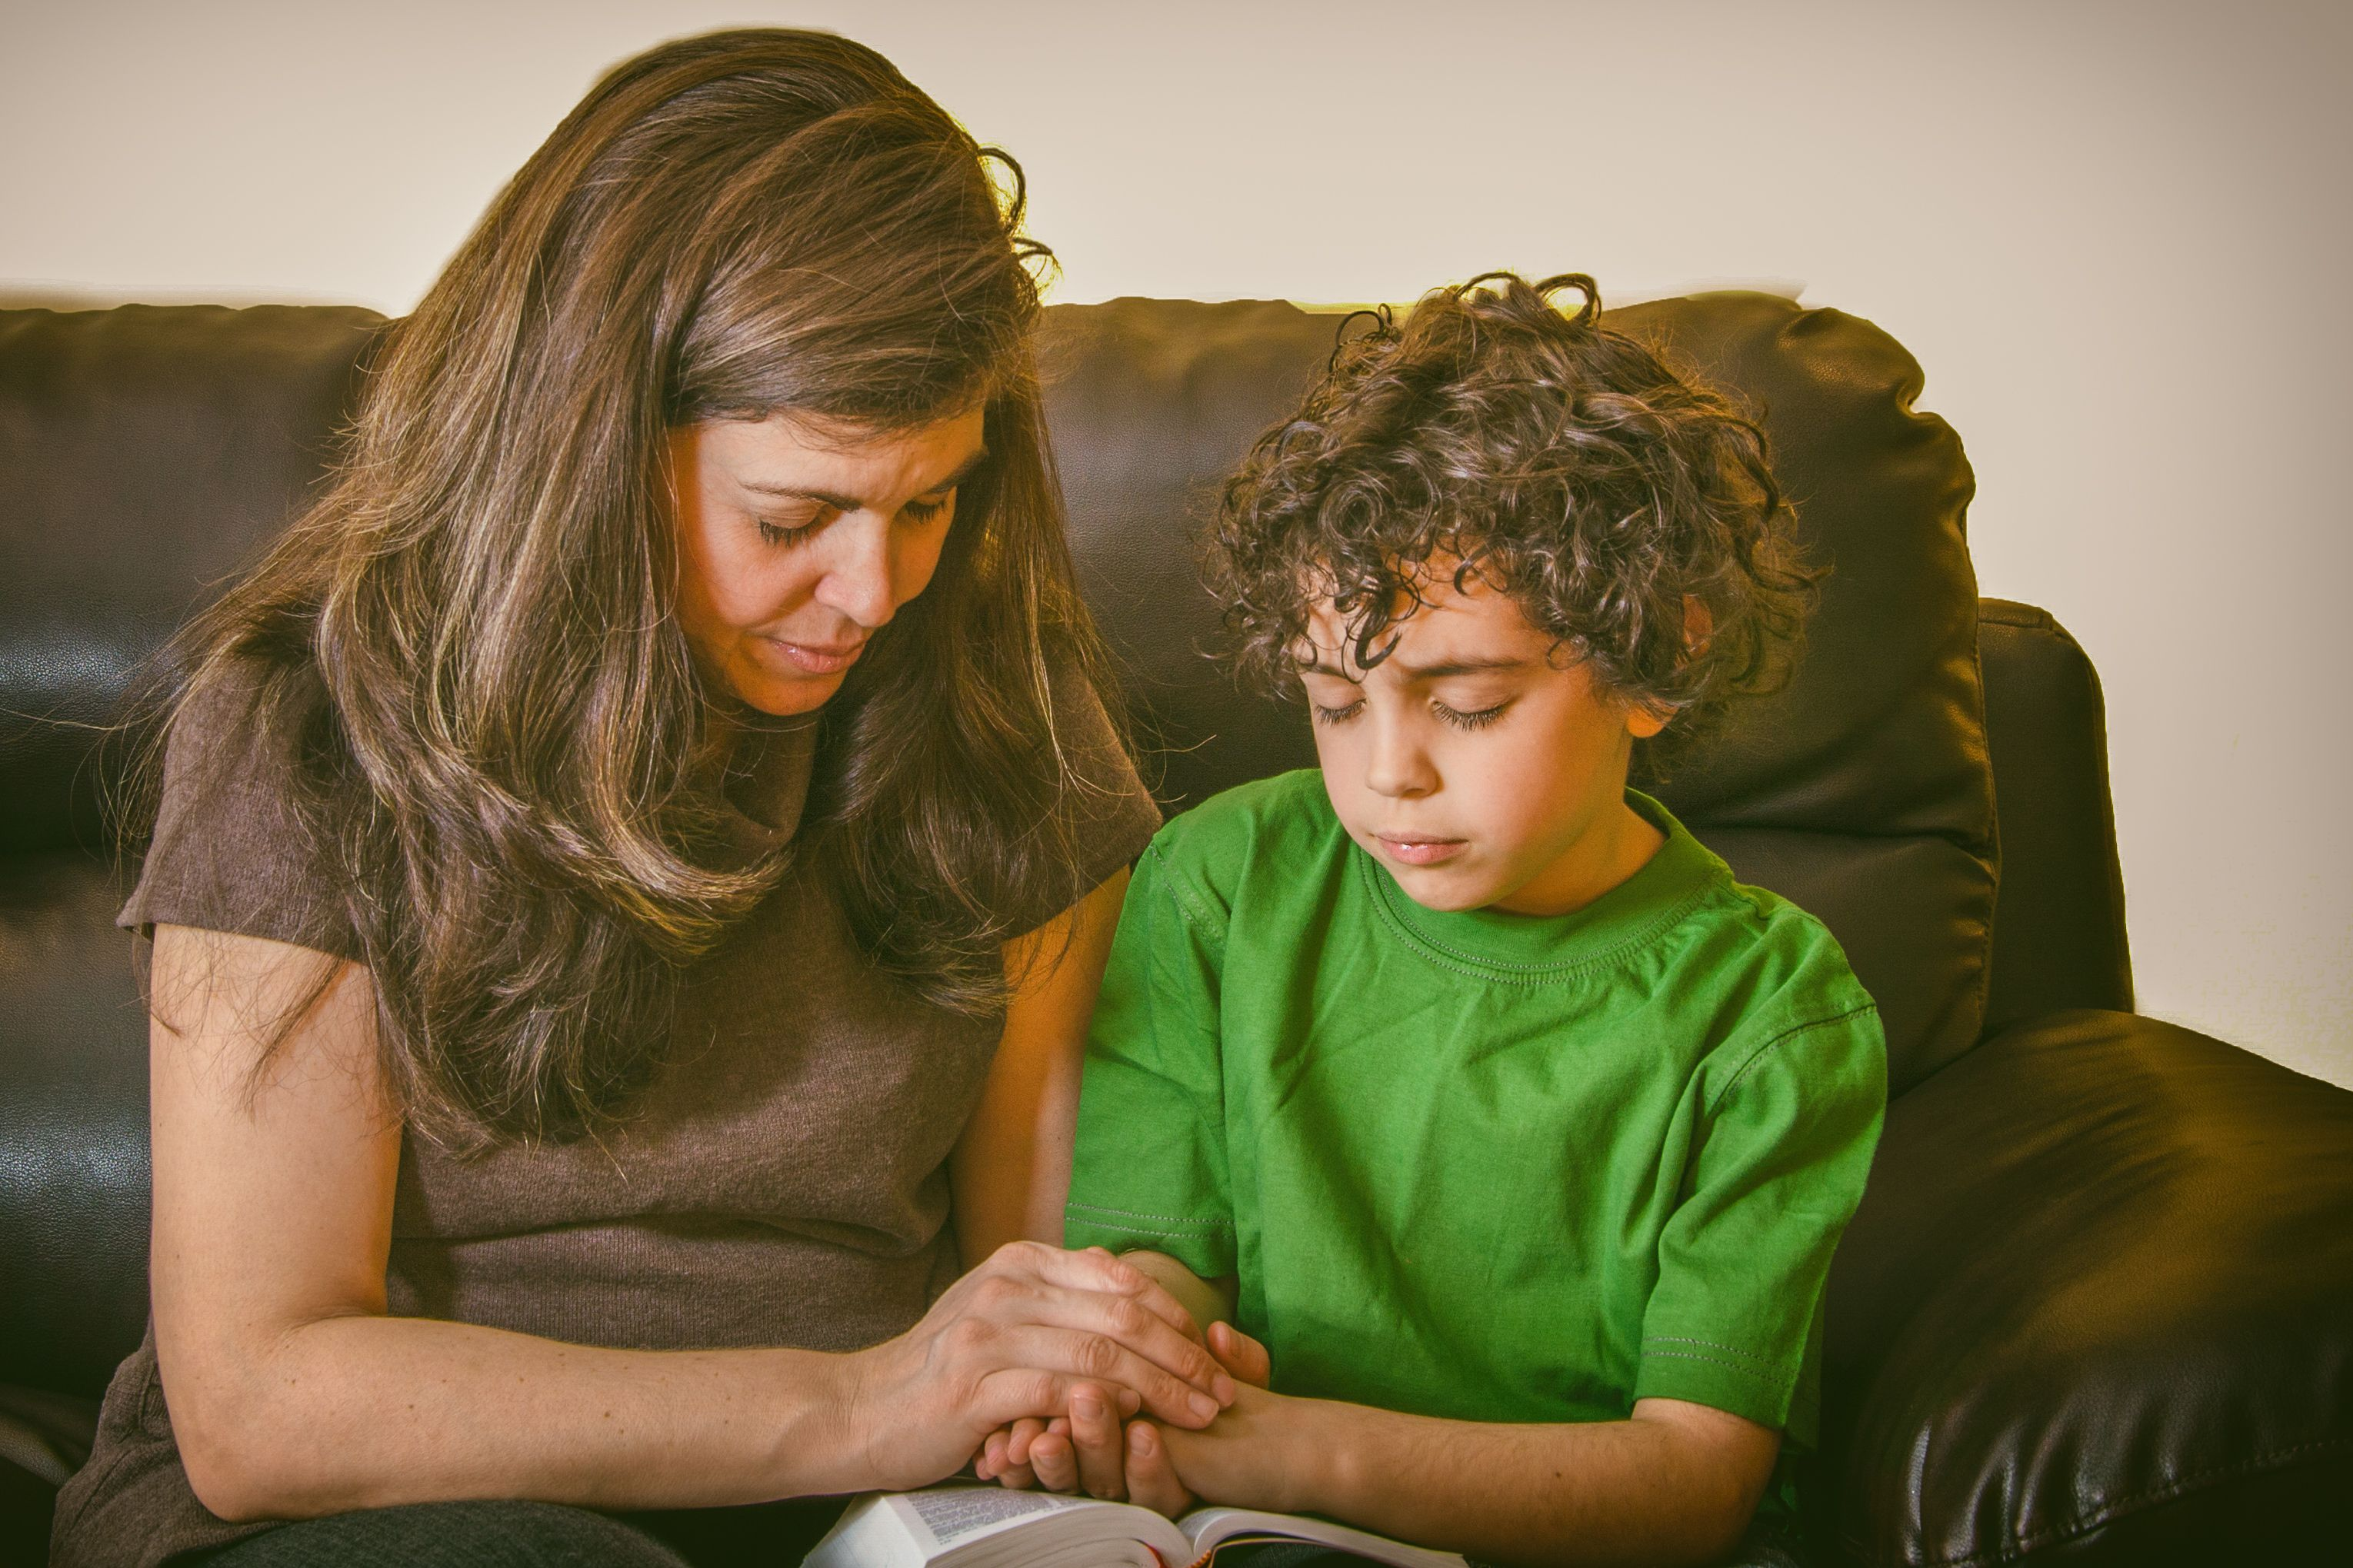 12 Bible Verses About Mothers That the Ones In Your Life Will She'll Cherish